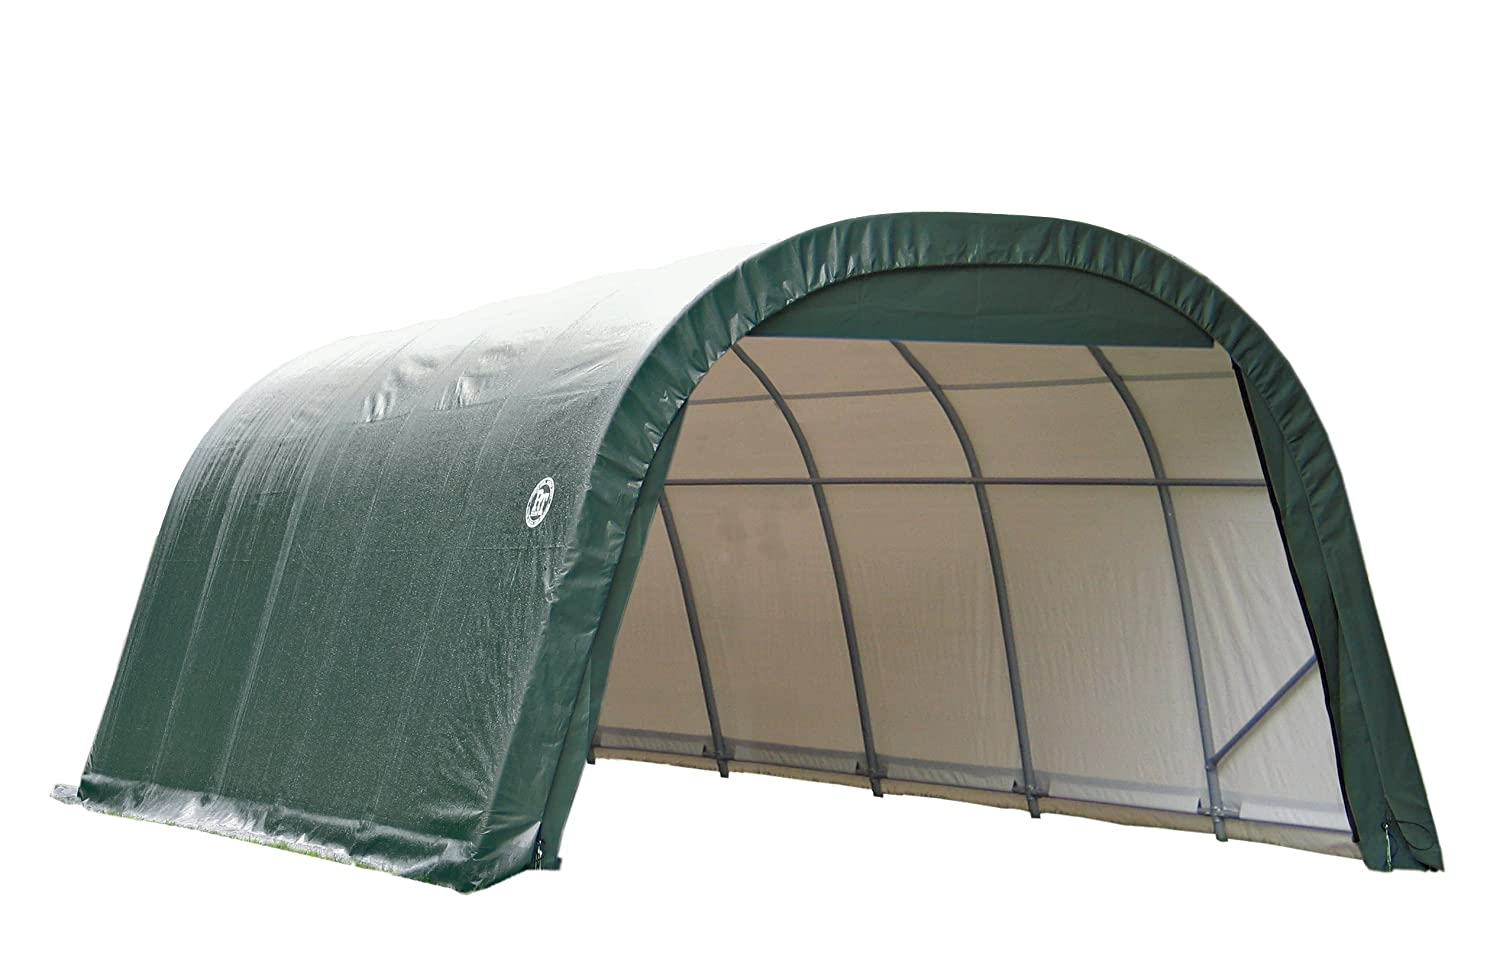 Exceptionnel Amazon.com : ShelterLogic 12 Ft.W Round Style Instant Garage   24ft.L X  12ft.W X 8ft.H, 1 5/8in. Frame, Green, Model# 72342 : Sun Shelters : Garden  U0026 ...